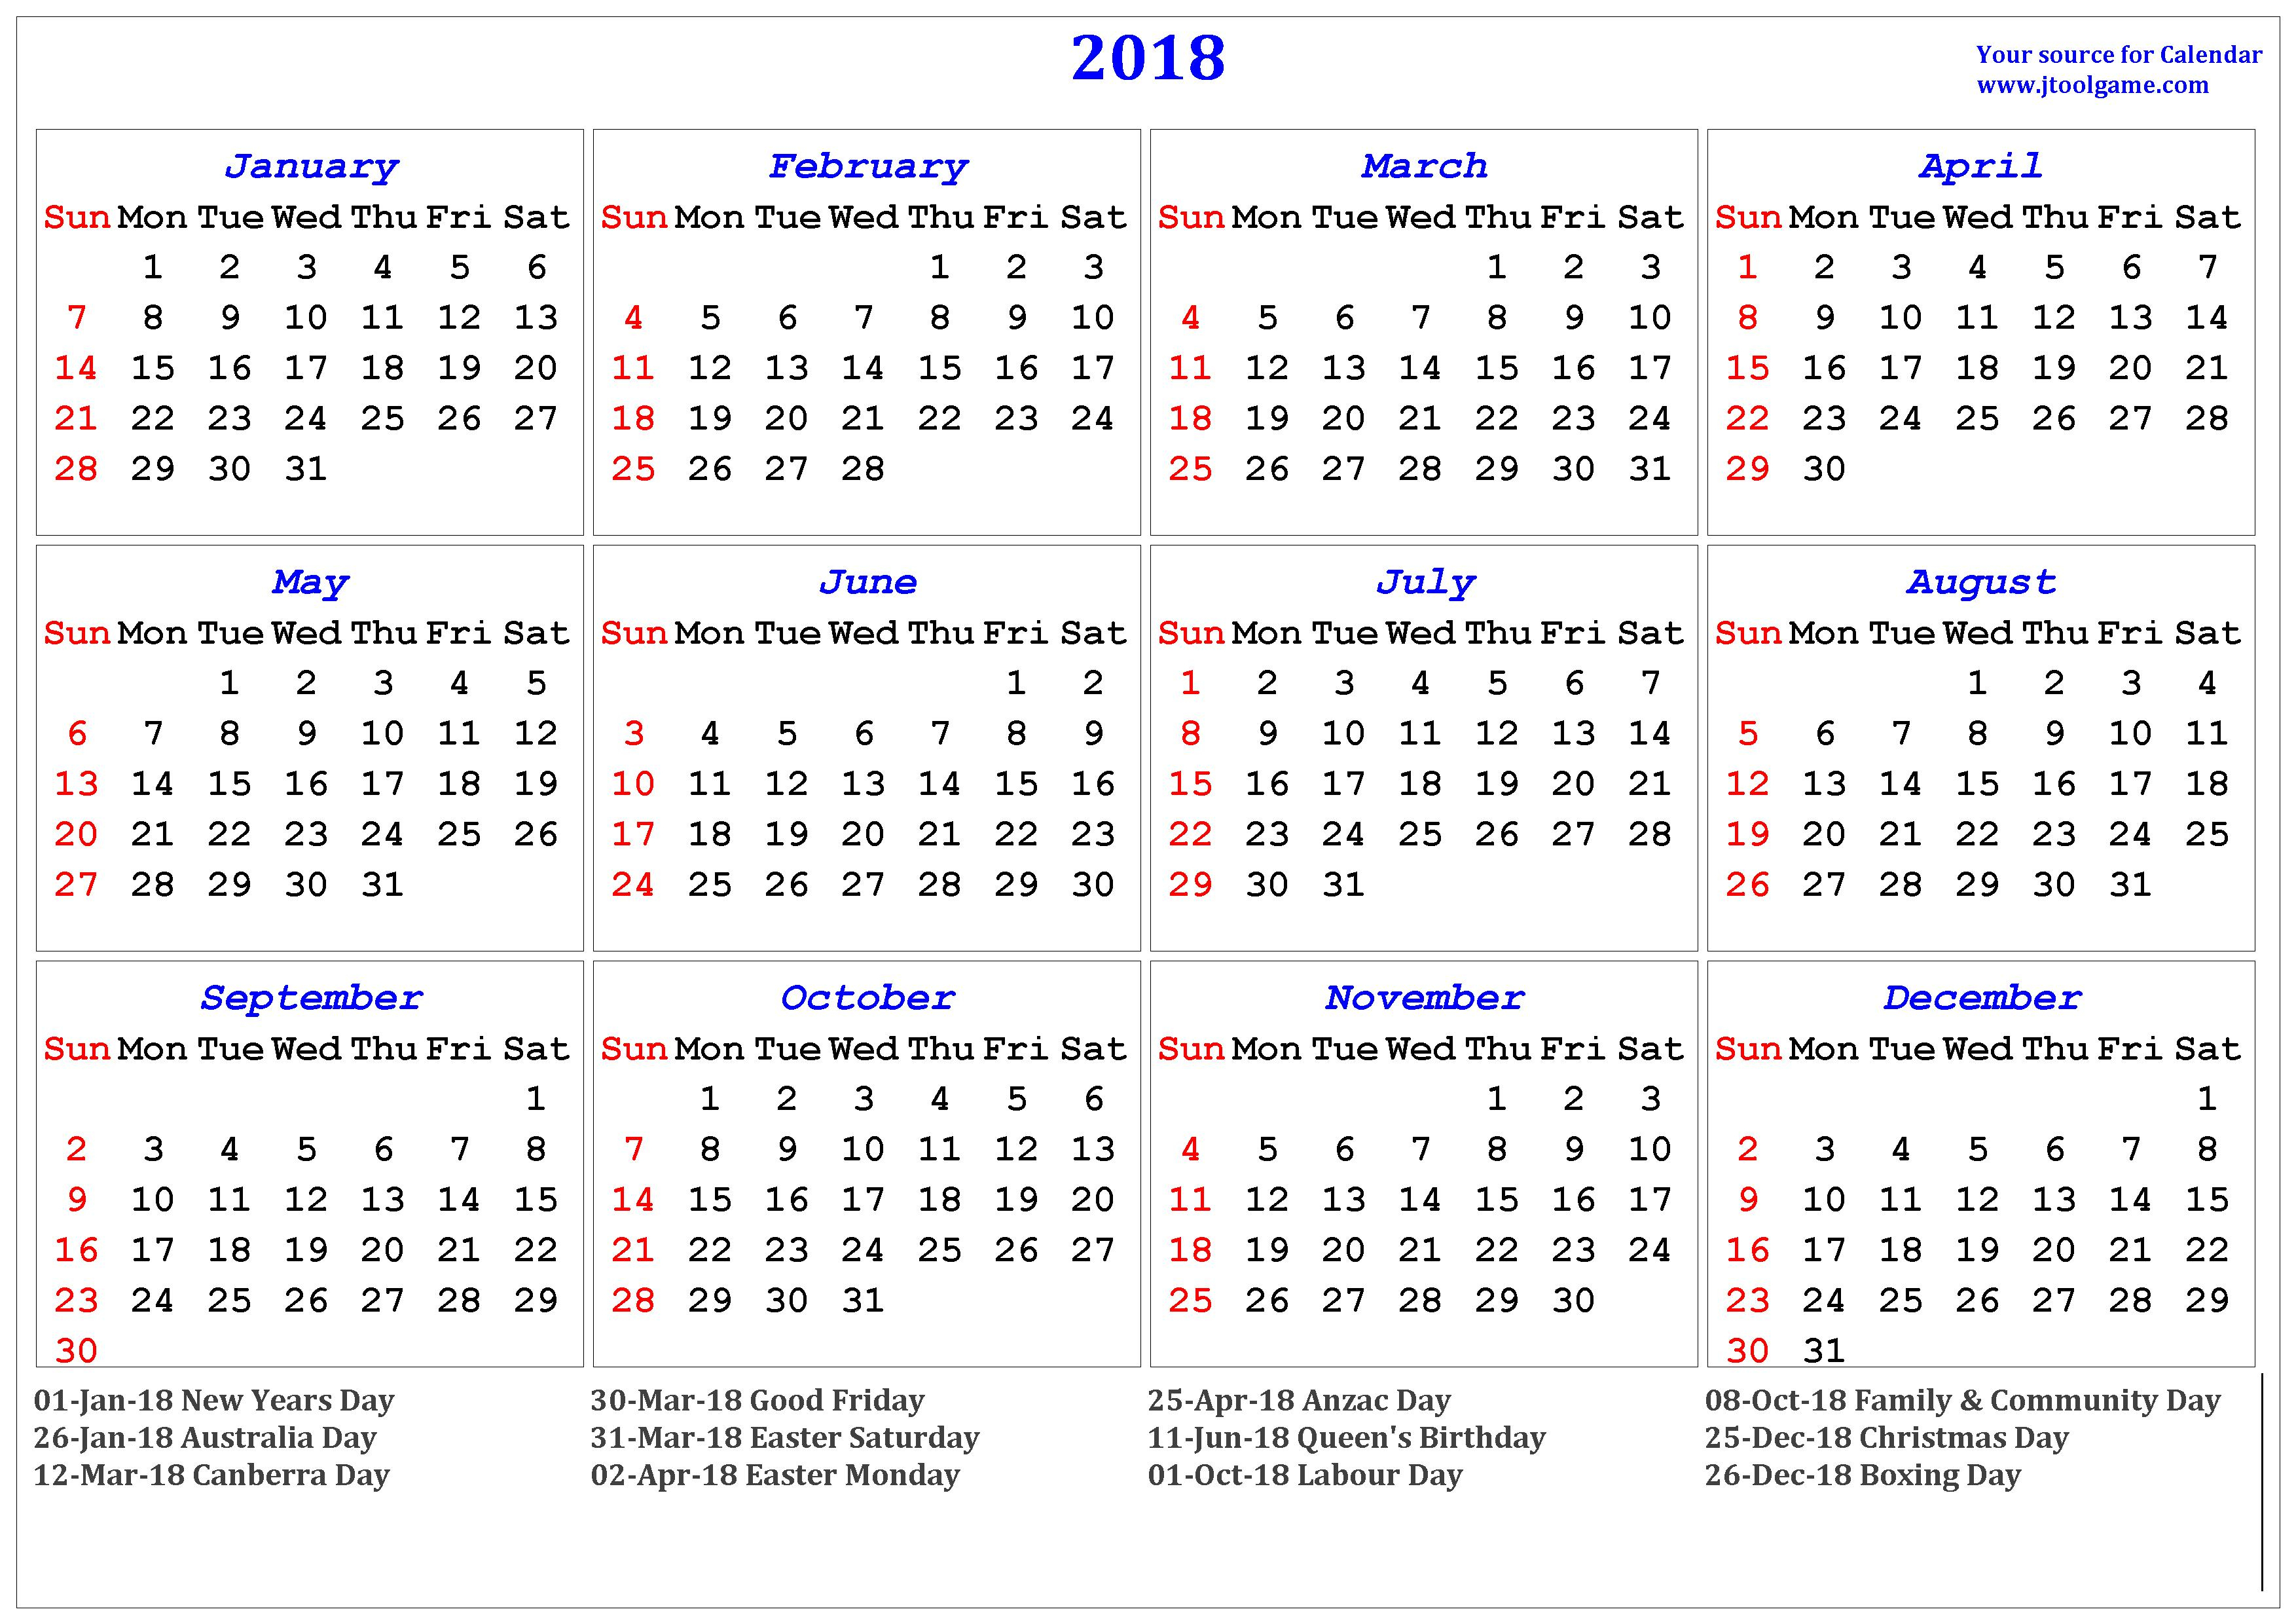 Calendar 2018 Australia | 2018 Calendar Printable For Free with regard to 2018 Calendar Australia Printable